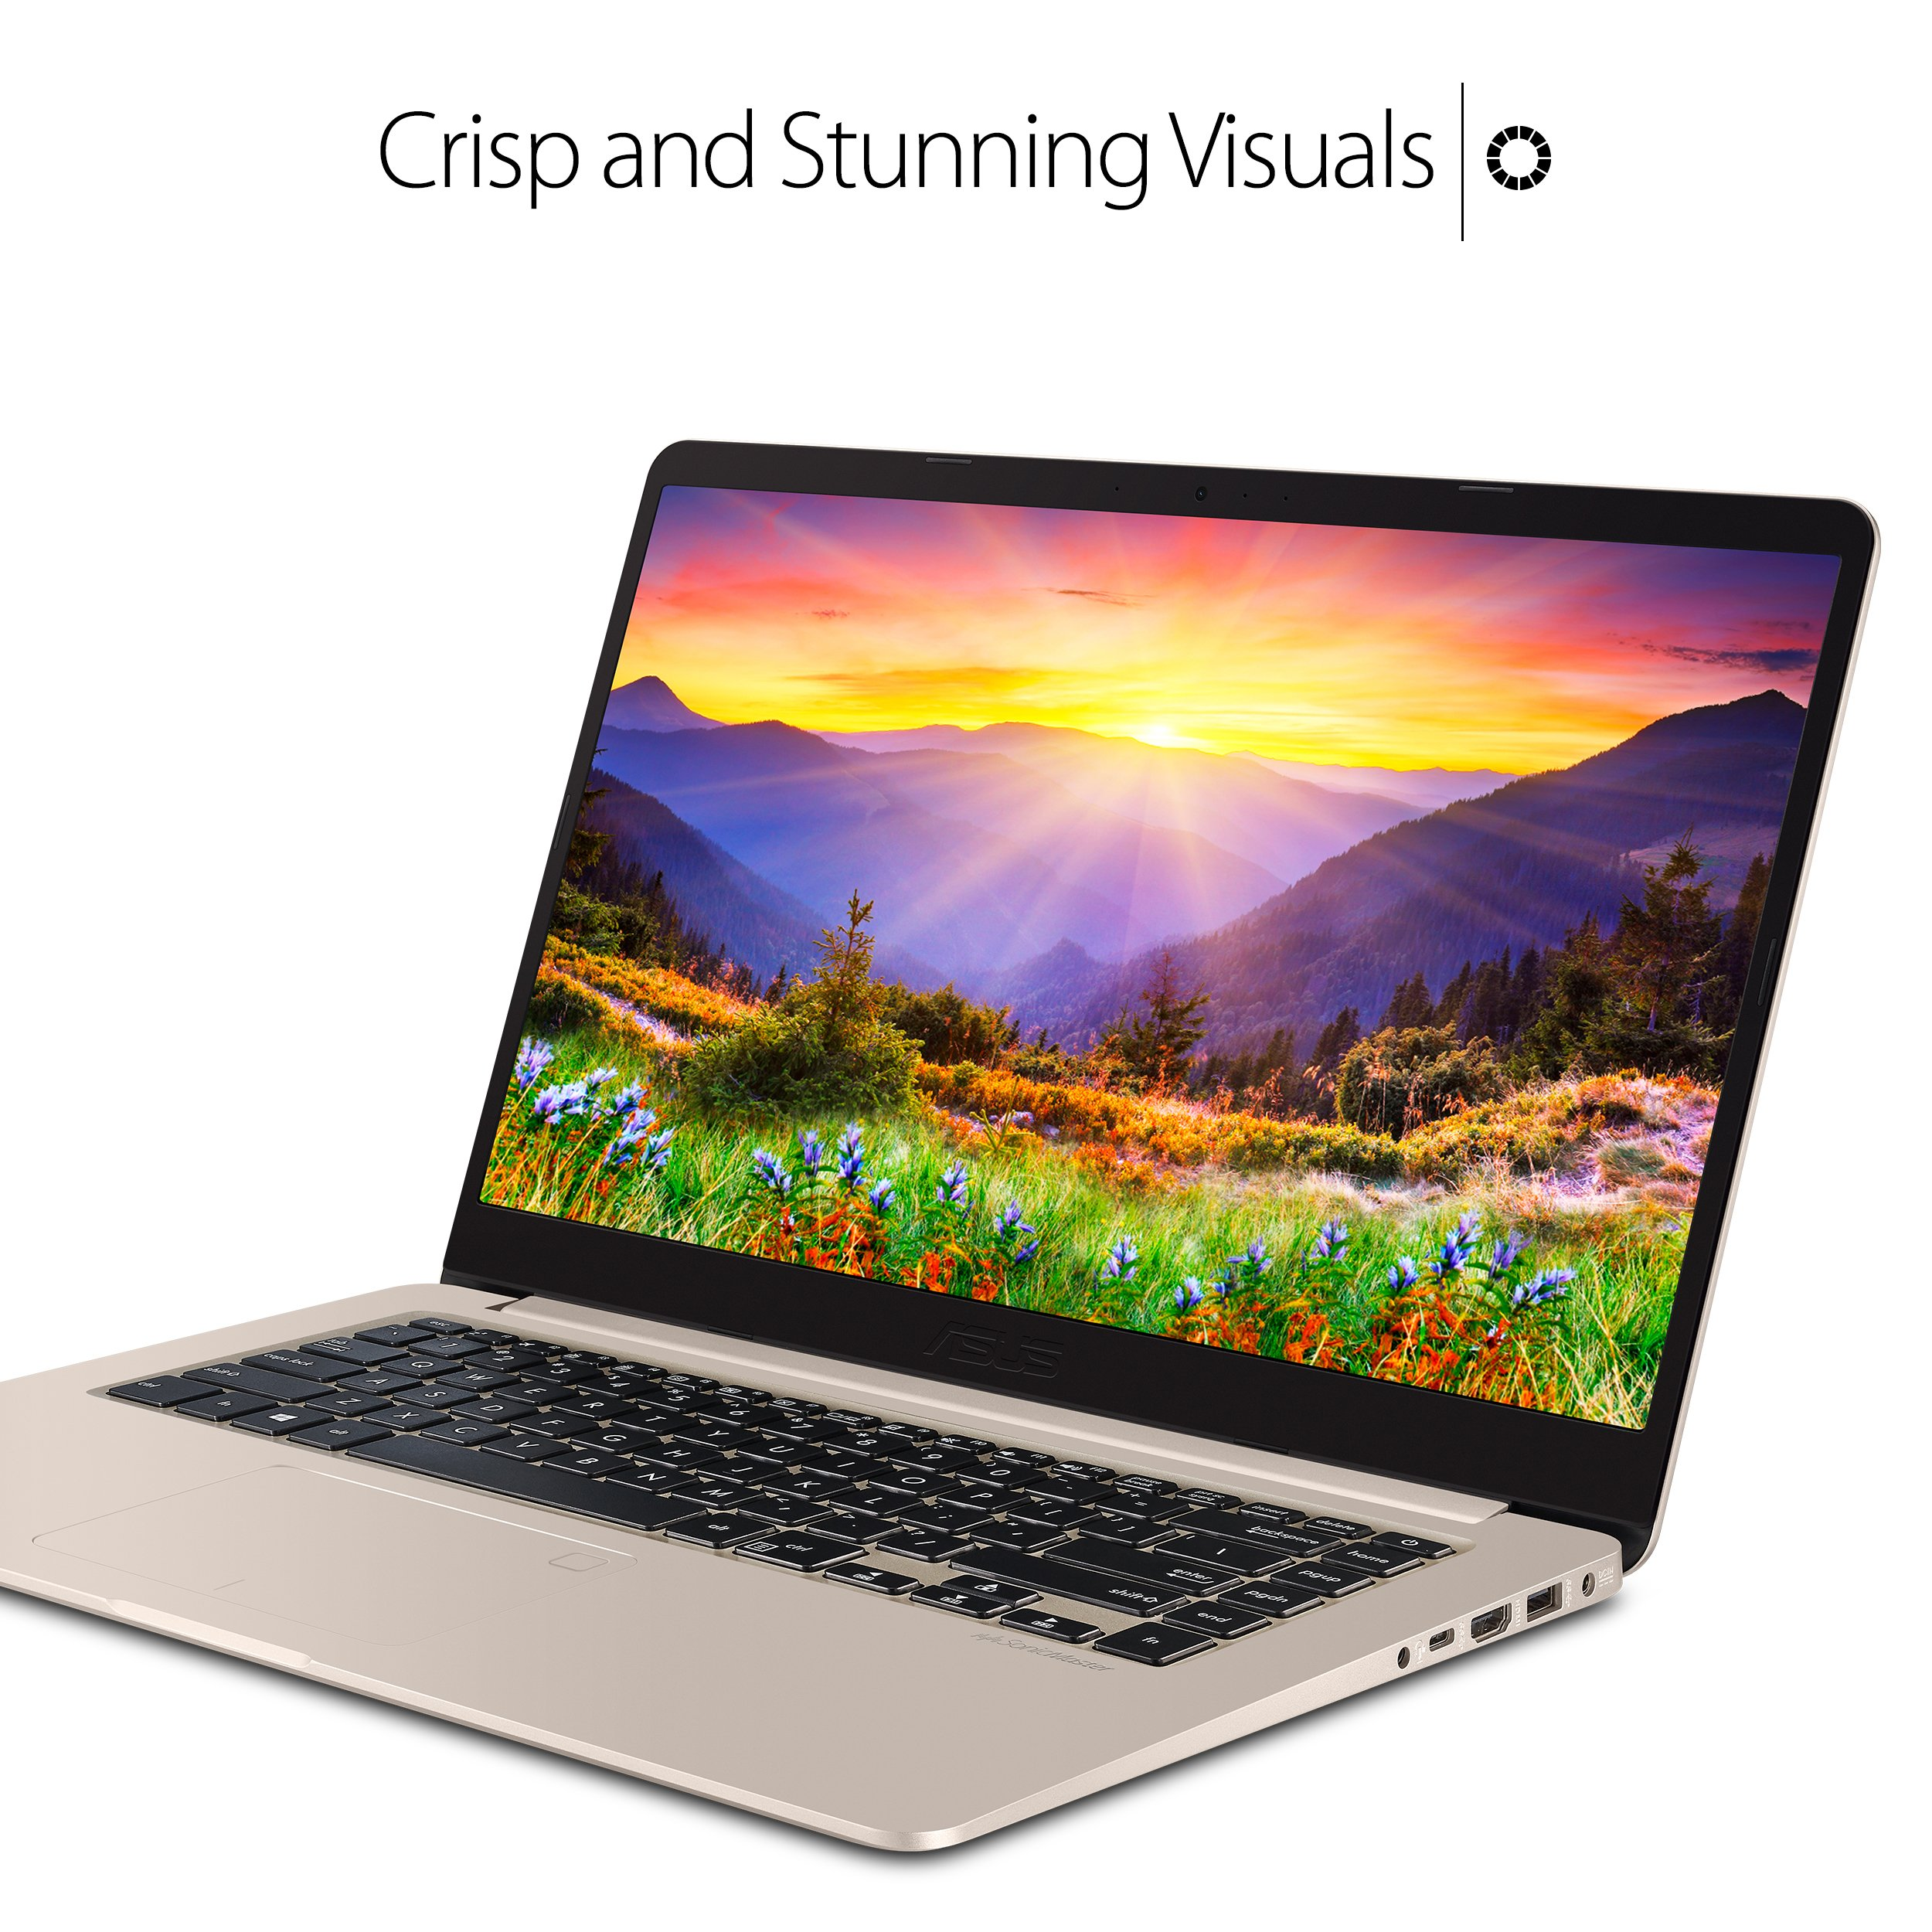 """ASUS VivoBook S Ultra Thin and Portable Laptop, Intel Core i7-8550U Processor, 8GB DDR4 RAM, 128GB SSD+1TB HDD, 15.6"""" FHD WideView Display, ASUS NanoEdge Bezel, S510UA-DS71 by ASUS (Image #9)"""